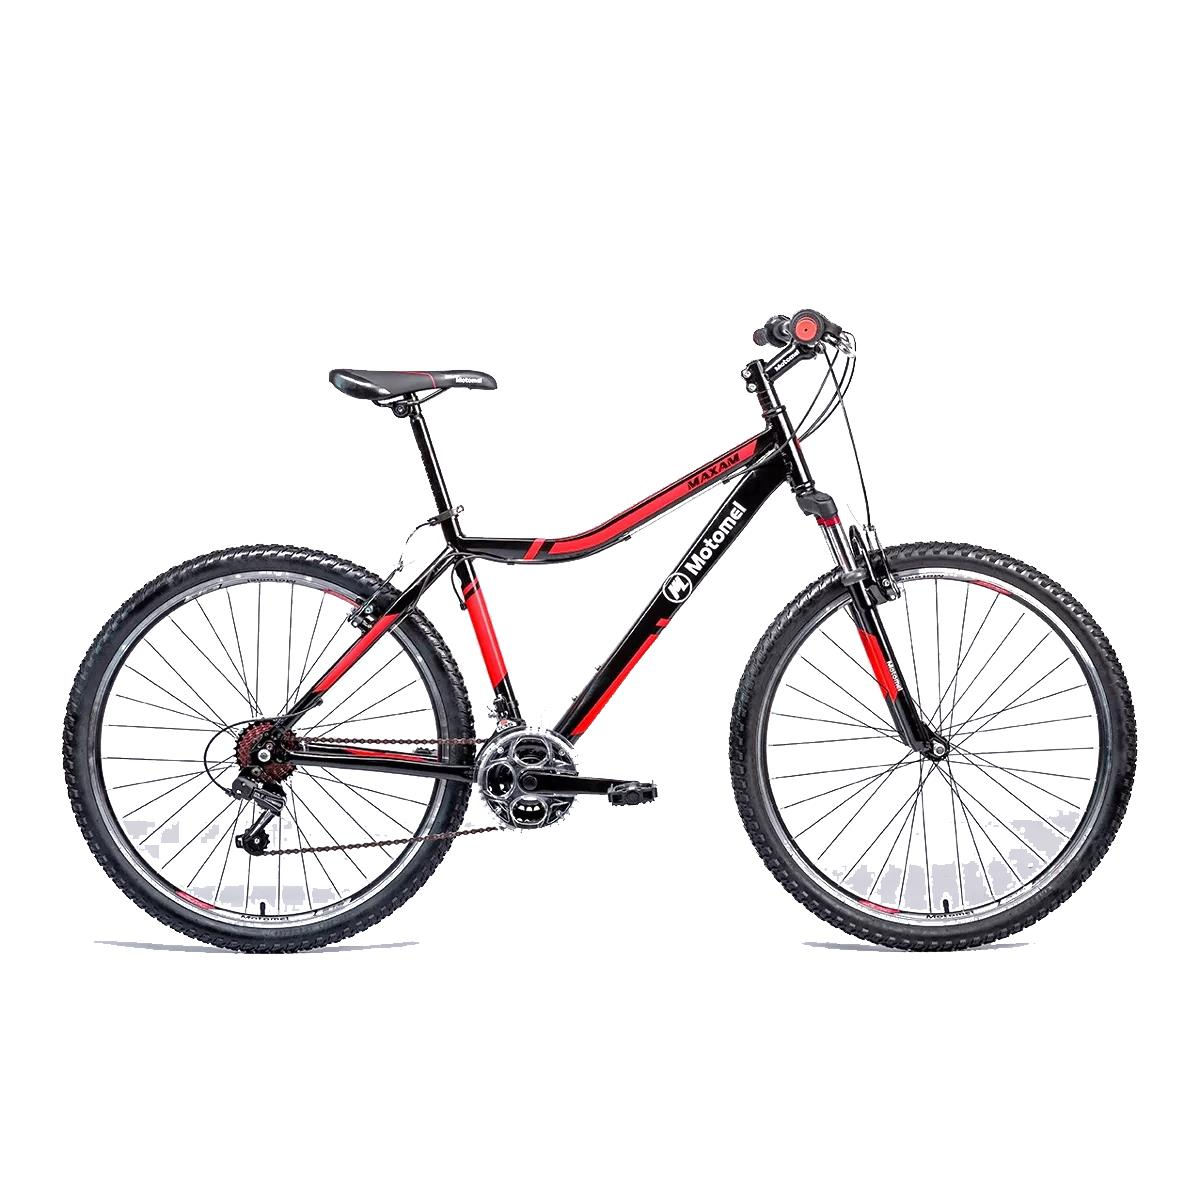 Bicicleta Mountain Bike Motomel Maxam 175l